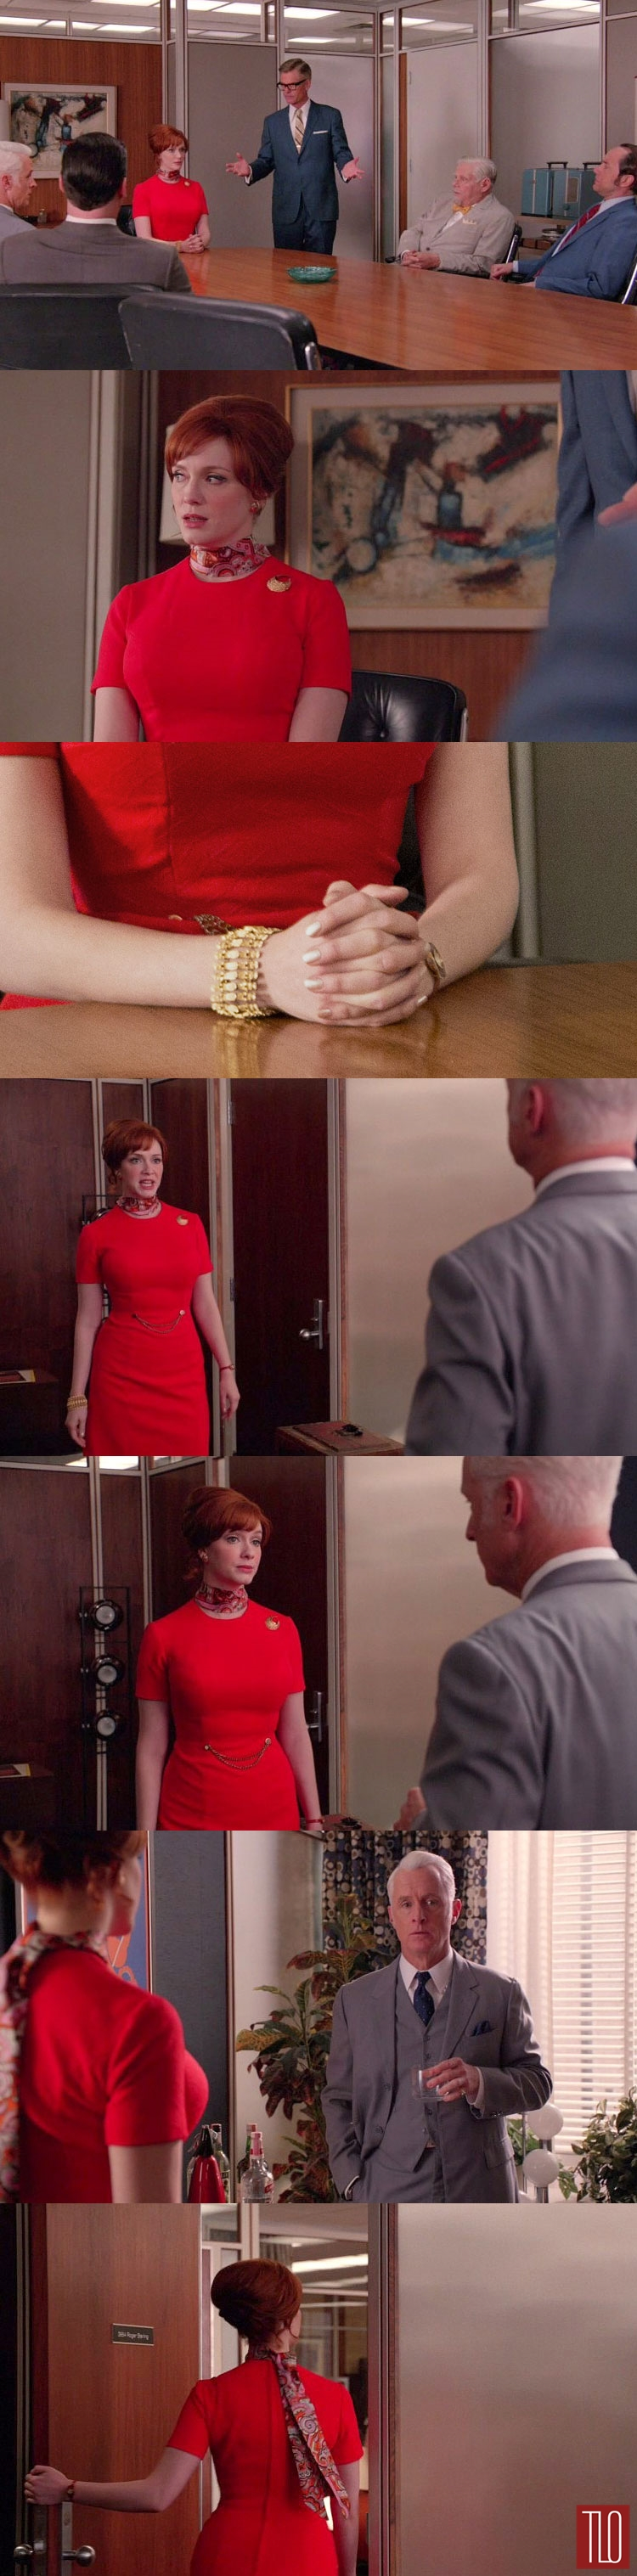 Mad_men-Mad-Style-Season-7-Episode-6-Tom-Lorenzo-Site-TLO (23)